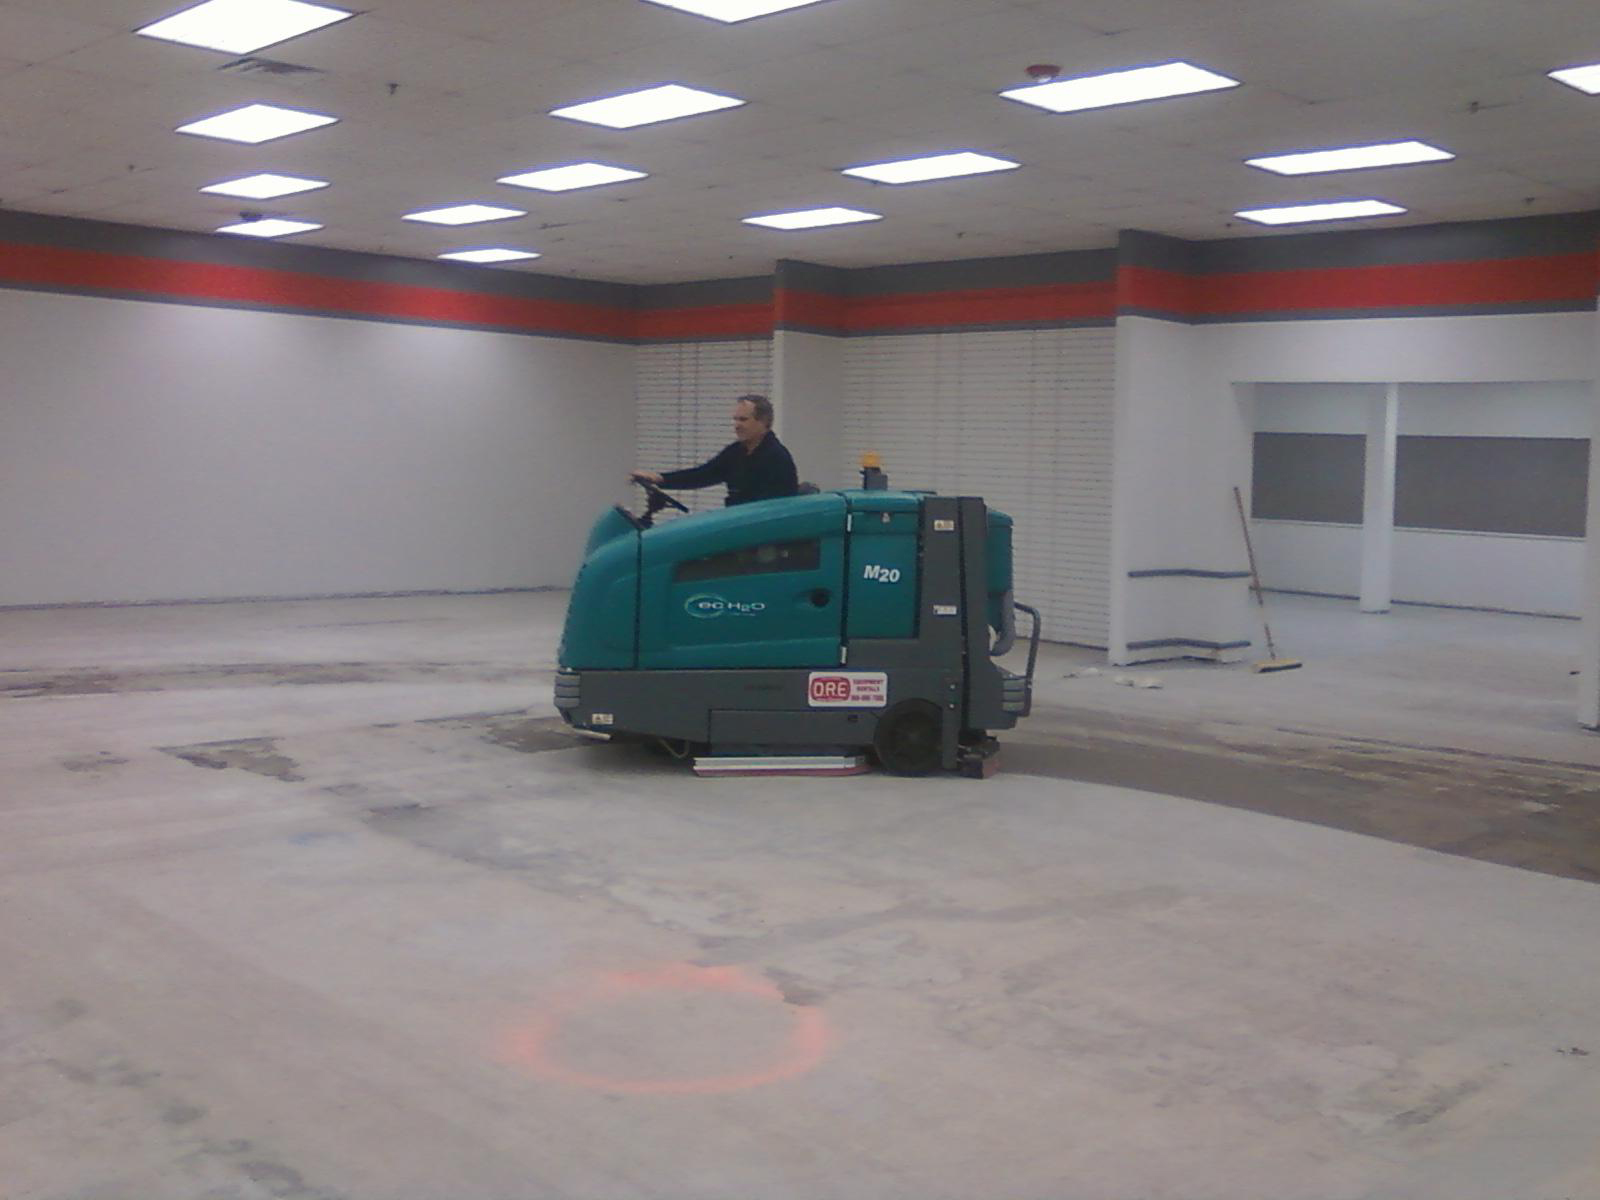 Making progress slowly but surely impact thrift stores for Floor zamboni